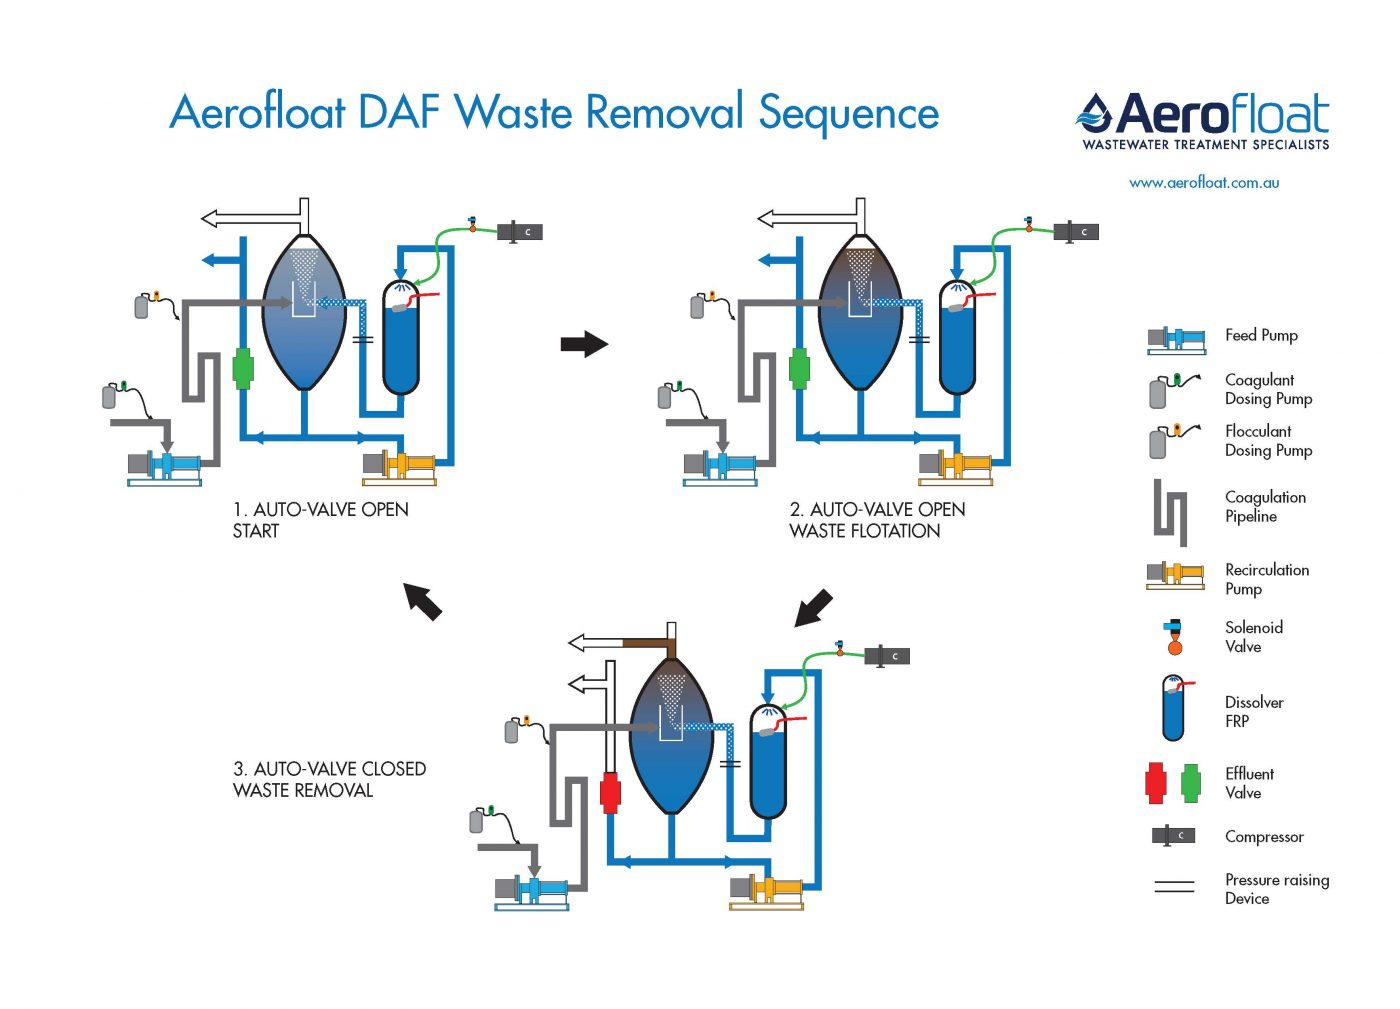 Aerofloat Dissolved Air Flotation Waste Removal Sequence Diagram